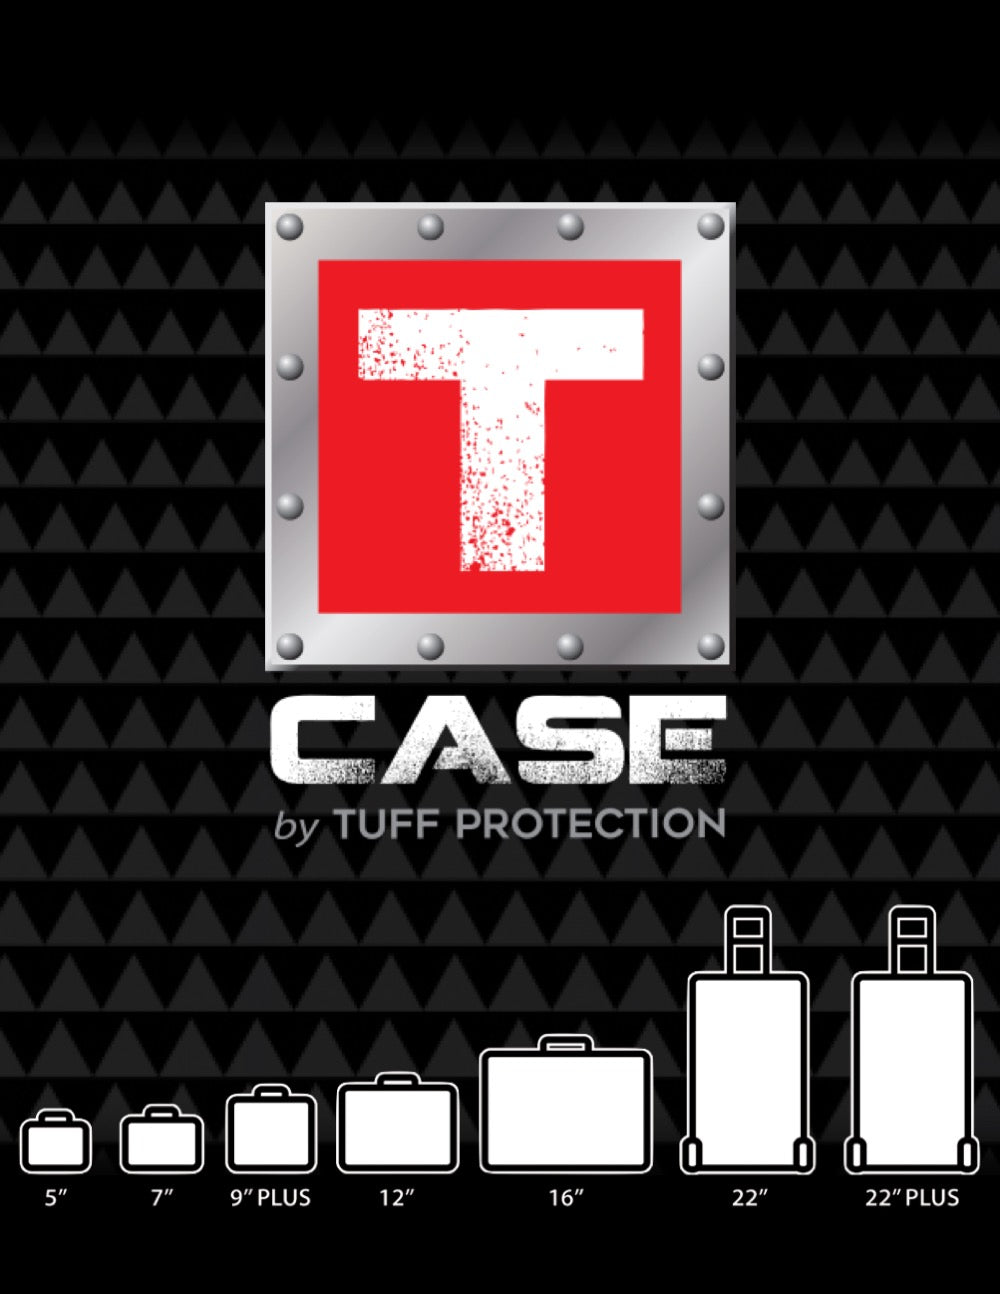 The T Case Warranty Information